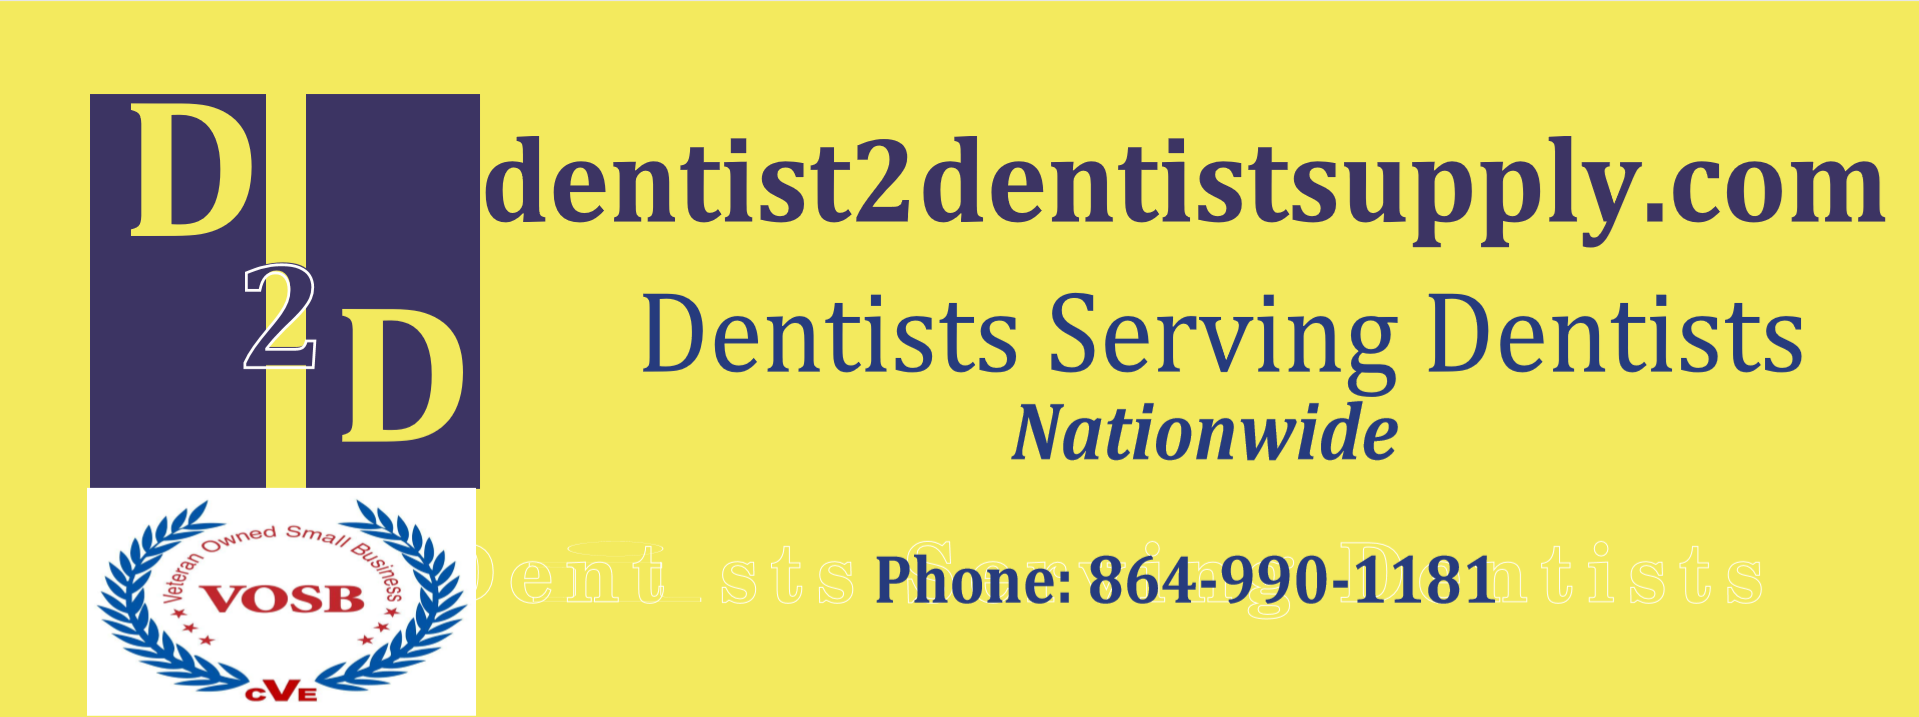 Dentist 2 Dentist Supply Company, LLC